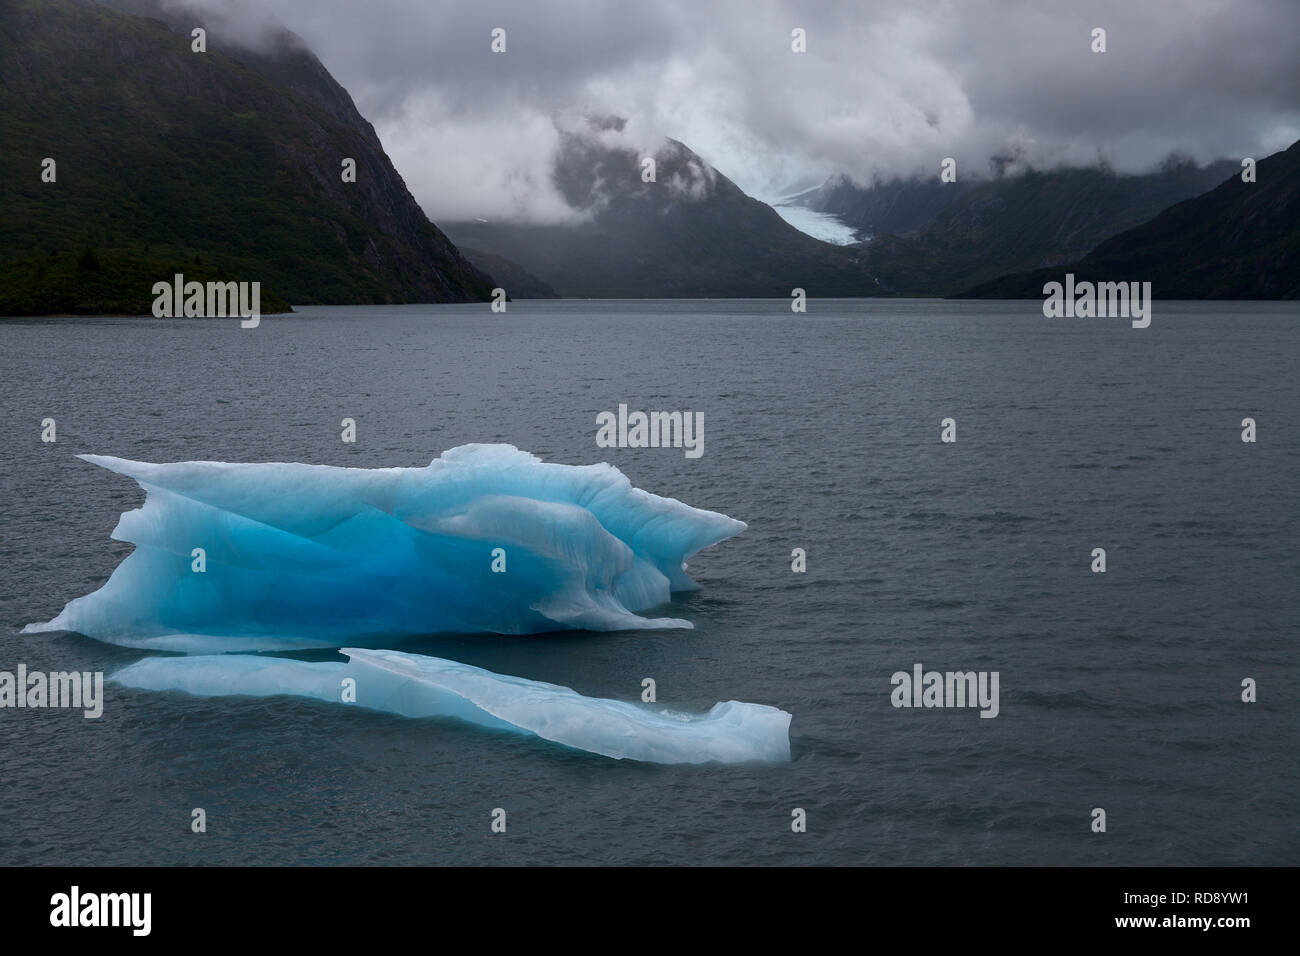 A large iceberg floats in the glacier-fed waters of Portage Lake in Alaska. - Stock Image